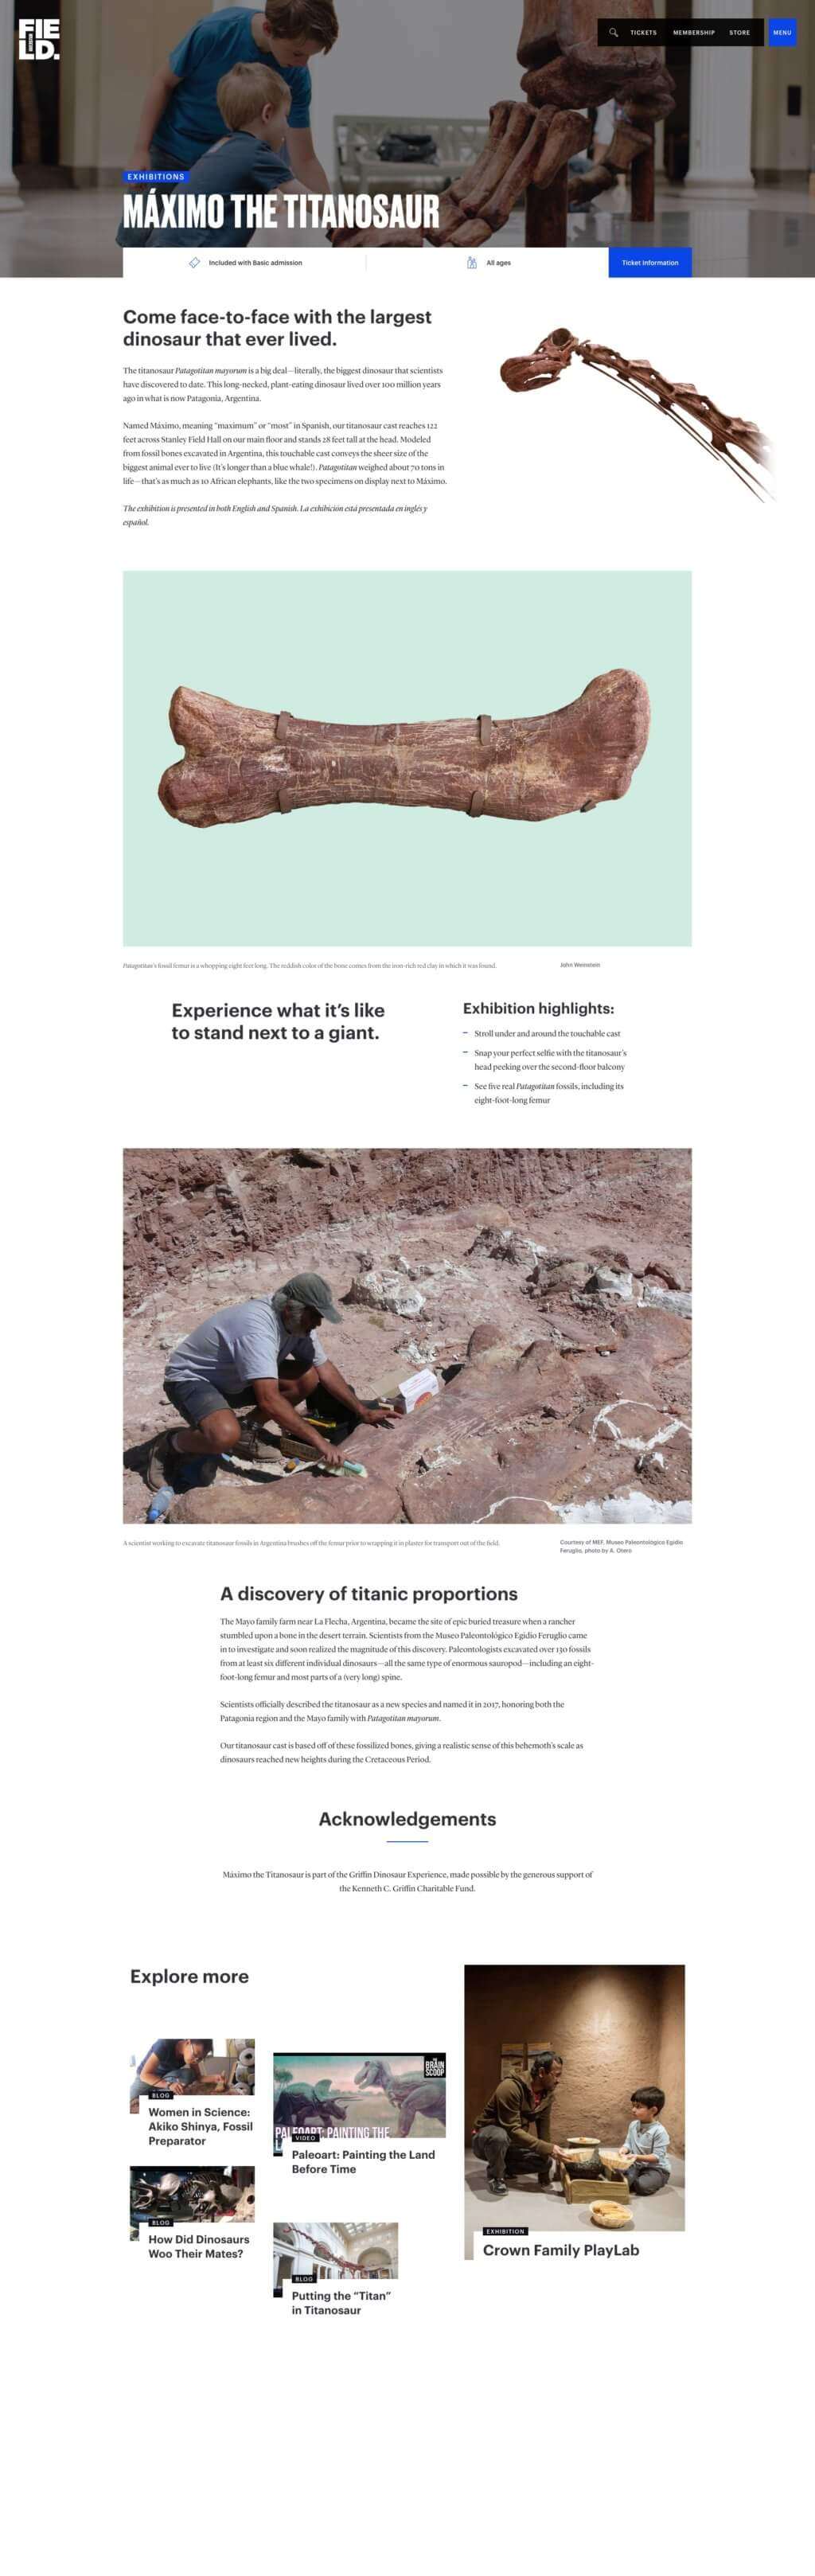 A screenshot of a Field Museum webpage featuring a vertical arrangement of images, including a close-up of a bone and an archeologist in a dirt field as well as blocks of text and related links at the bottom of the page.